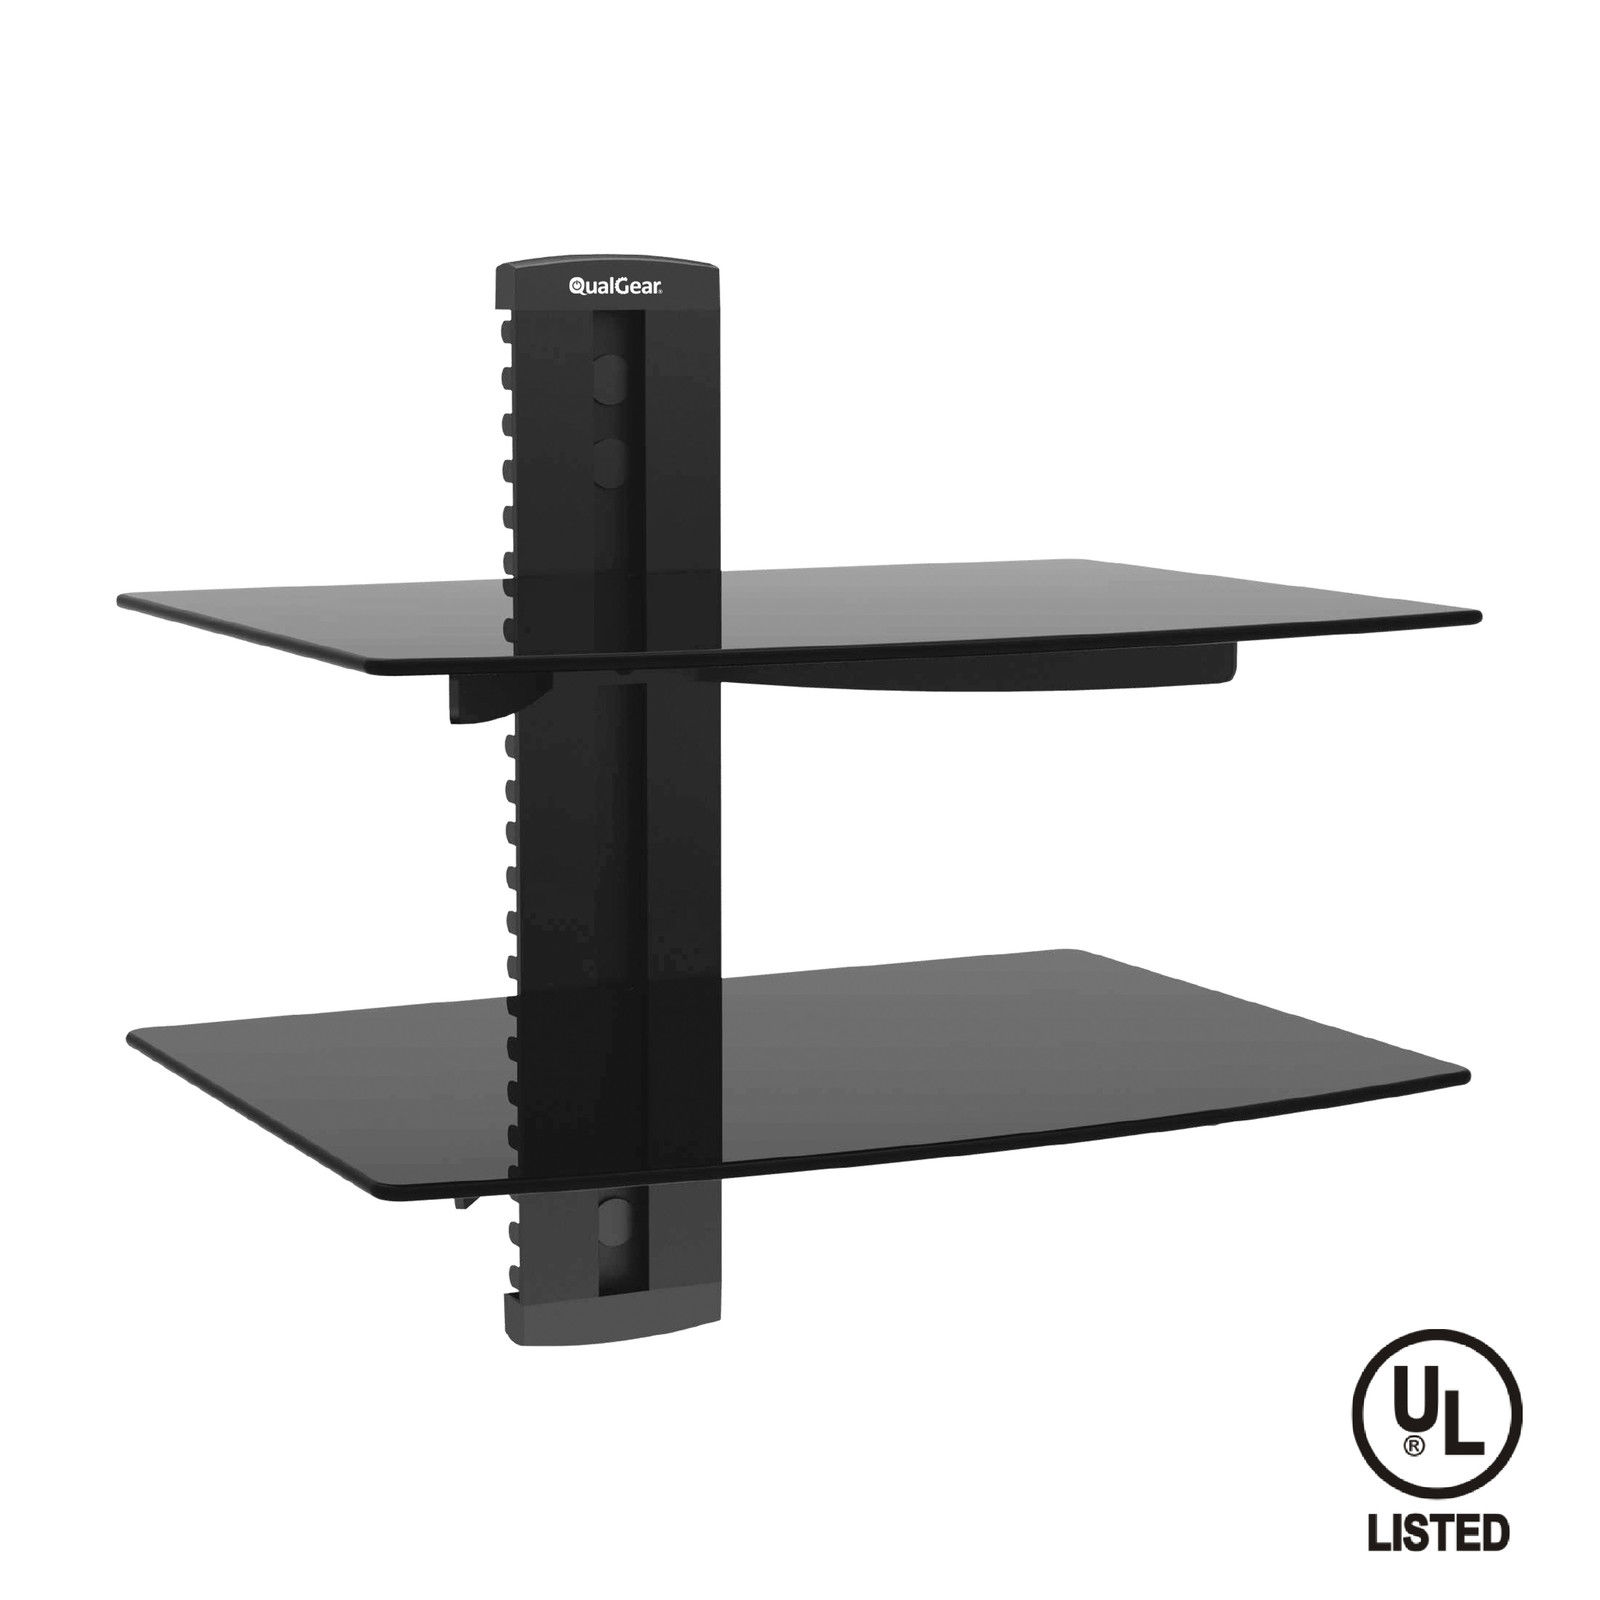 QualGear® Universal Dual Shelf Wall Mount for A/V Components upto 8kgs/17.6lbs(x2), Black (QG-DB-002-BLK)